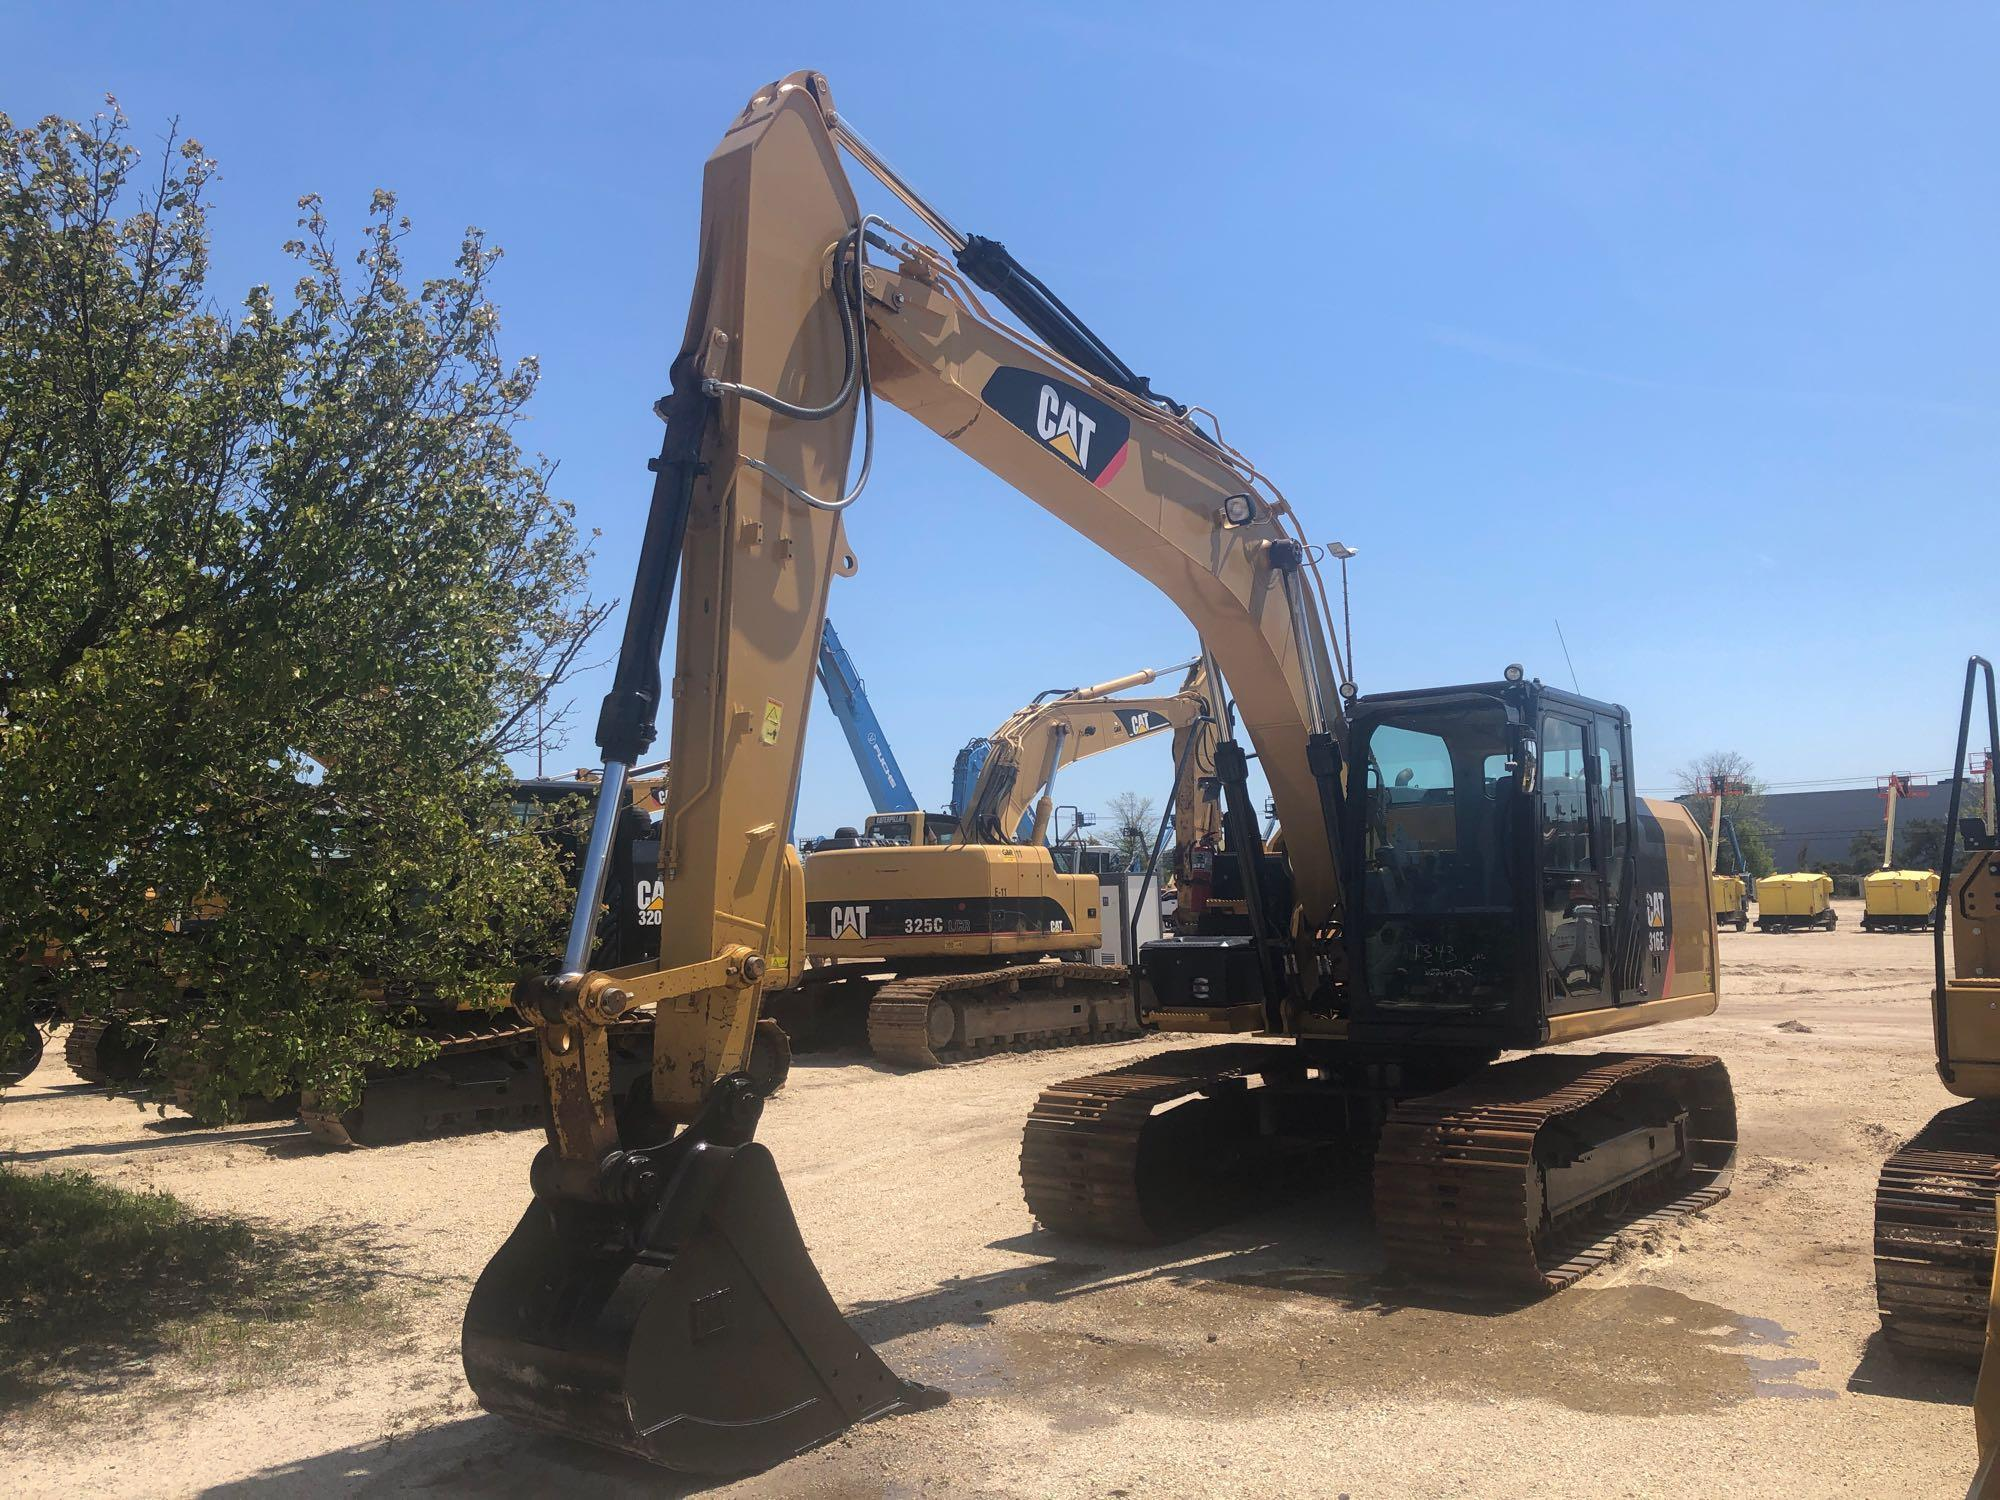 2013 CAT 316EL HYDRAULIC EXCAVATOR SN:DZW00991 Powered